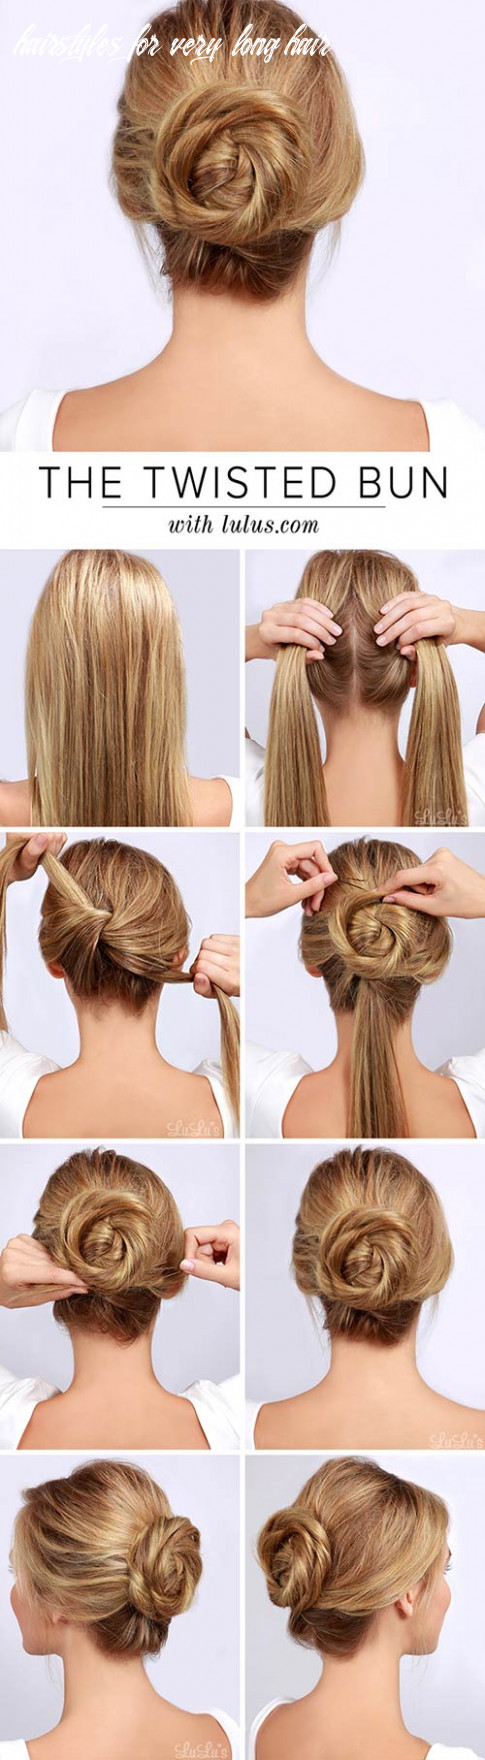 10 awesome hairstyles for girls with long hair hairstyles for very long hair